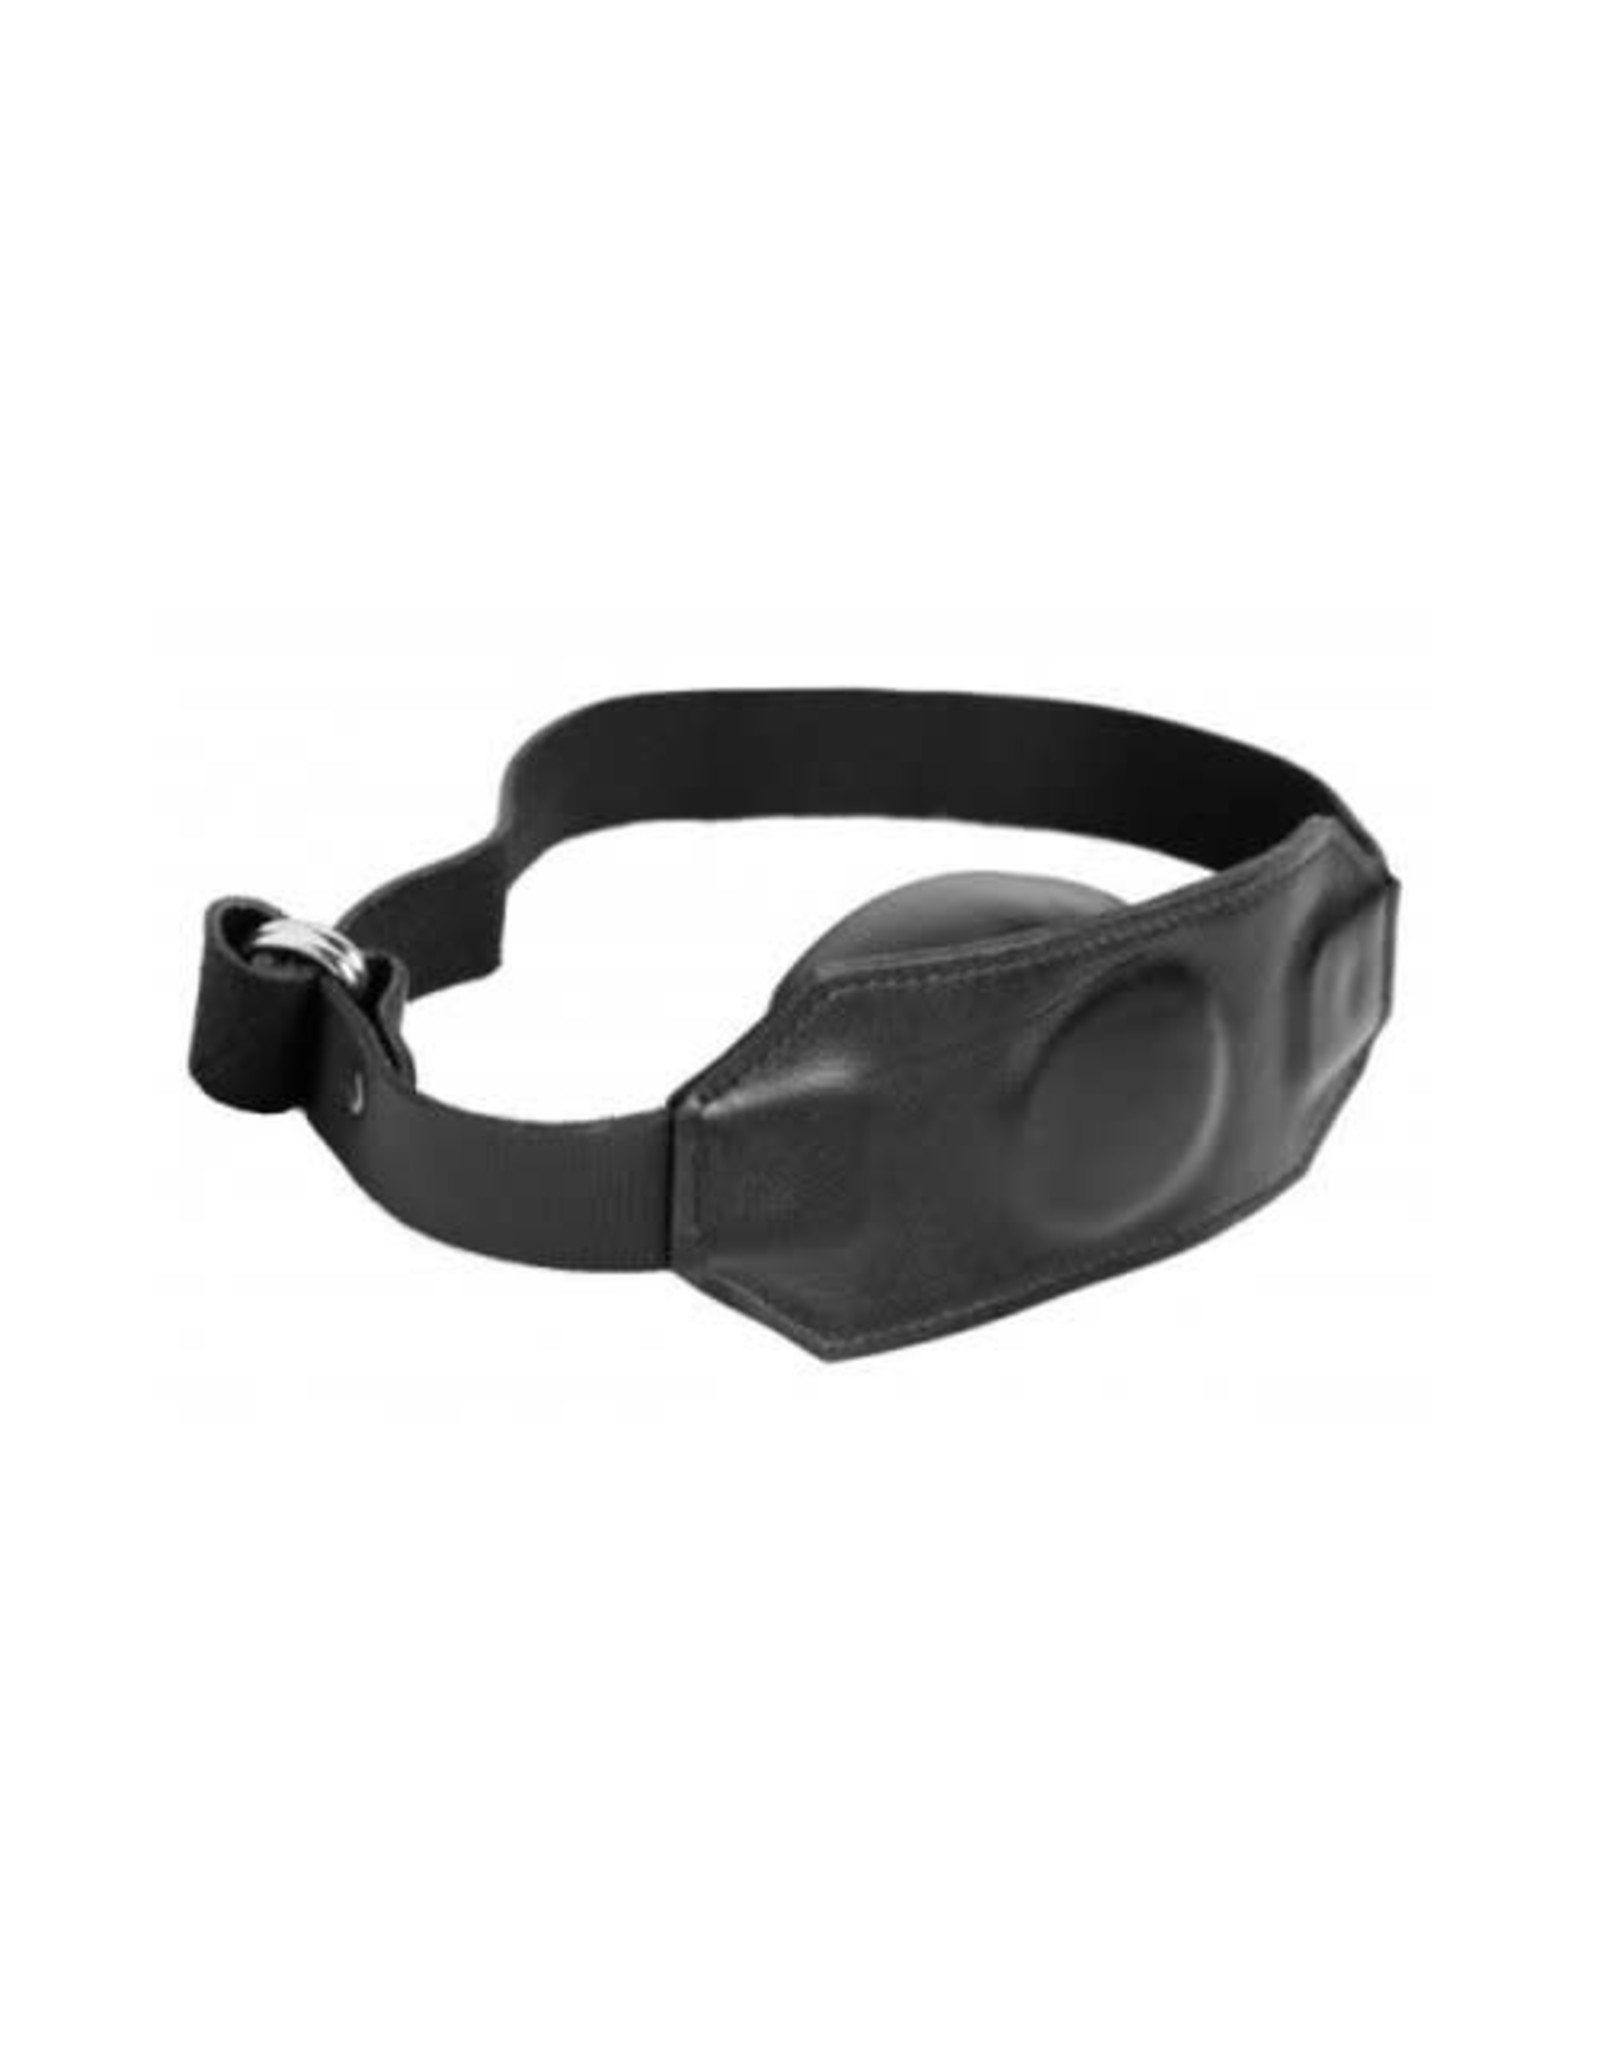 Strict Leather Strict Leather Stuffer Mouth Gag